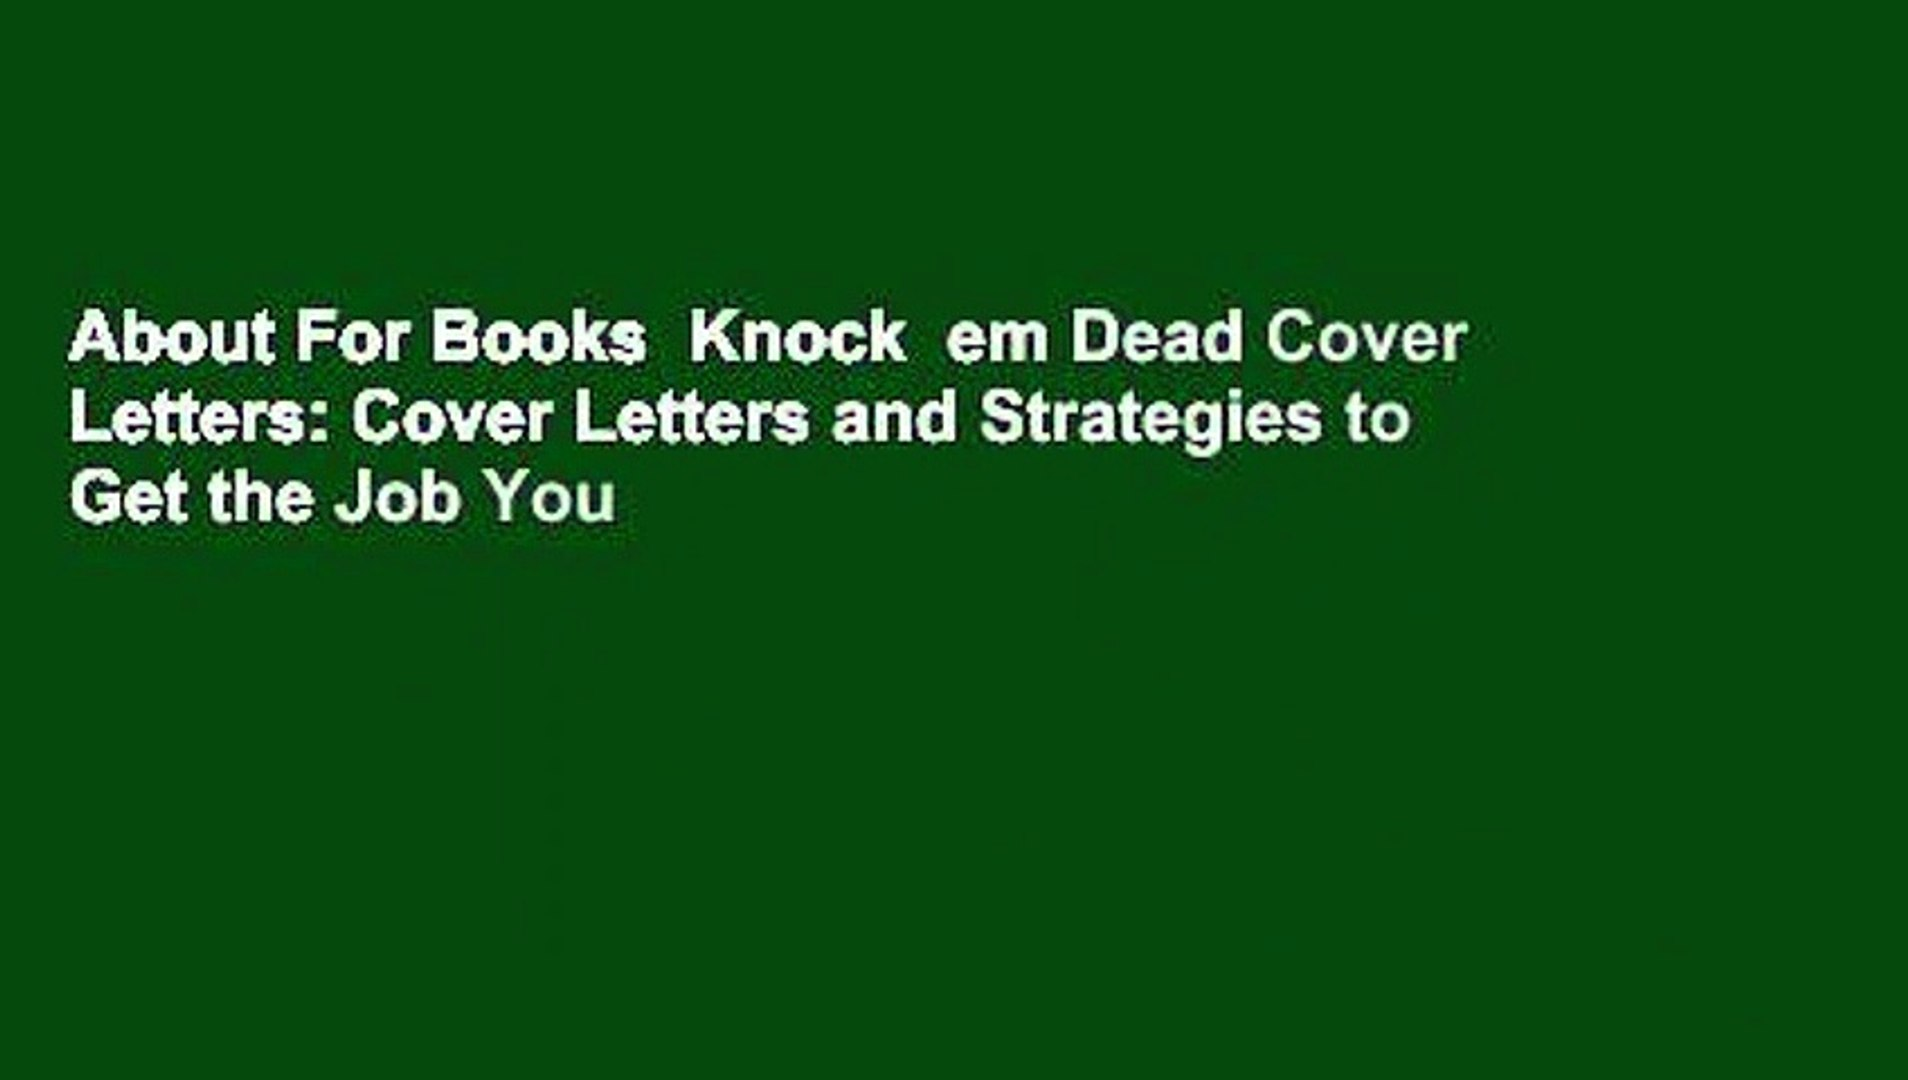 About For Books  Knock  em Dead Cover Letters: Cover Letters and Strategies to Get the Job You